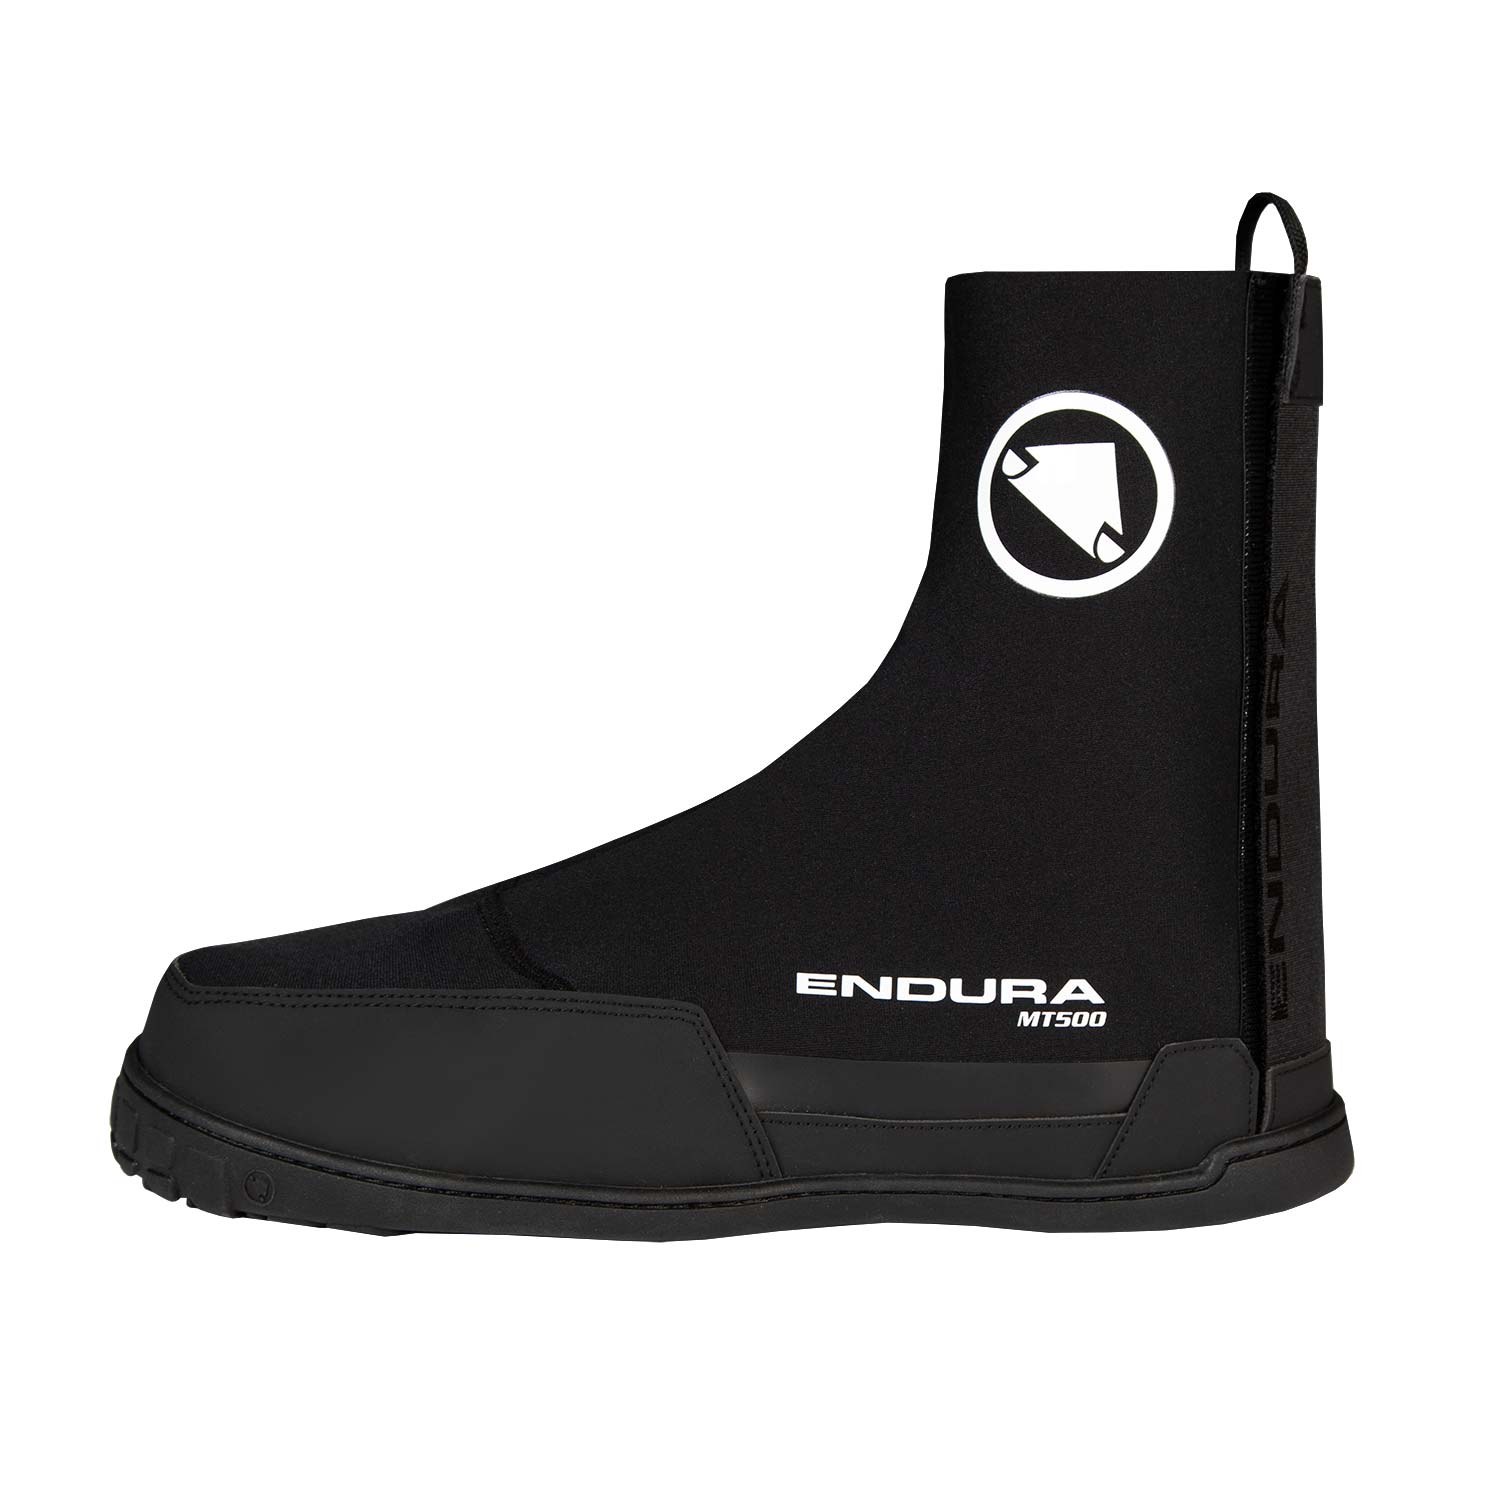 Endura MT500 Plus II (M-L) Waterproof Flat Pedal Cycling Overshoes